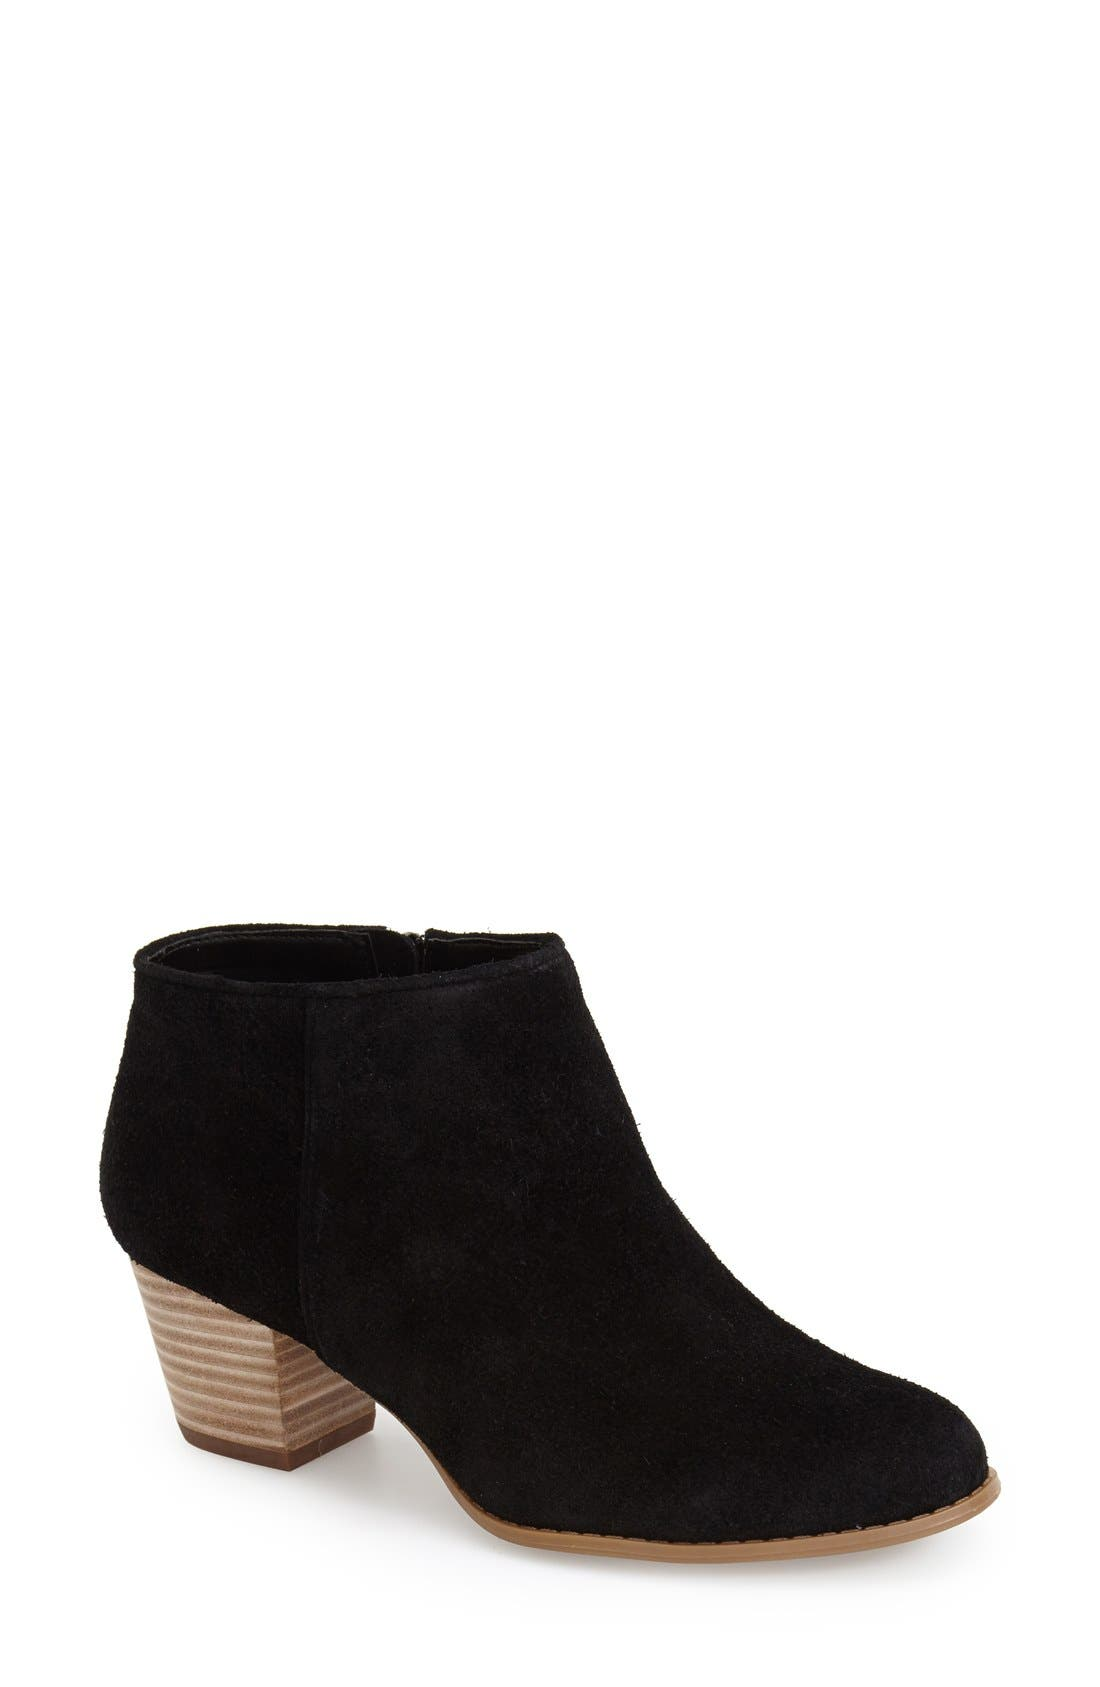 Alternate Image 1 Selected - Sole Society 'Skye' Chelsea Bootie (Women)